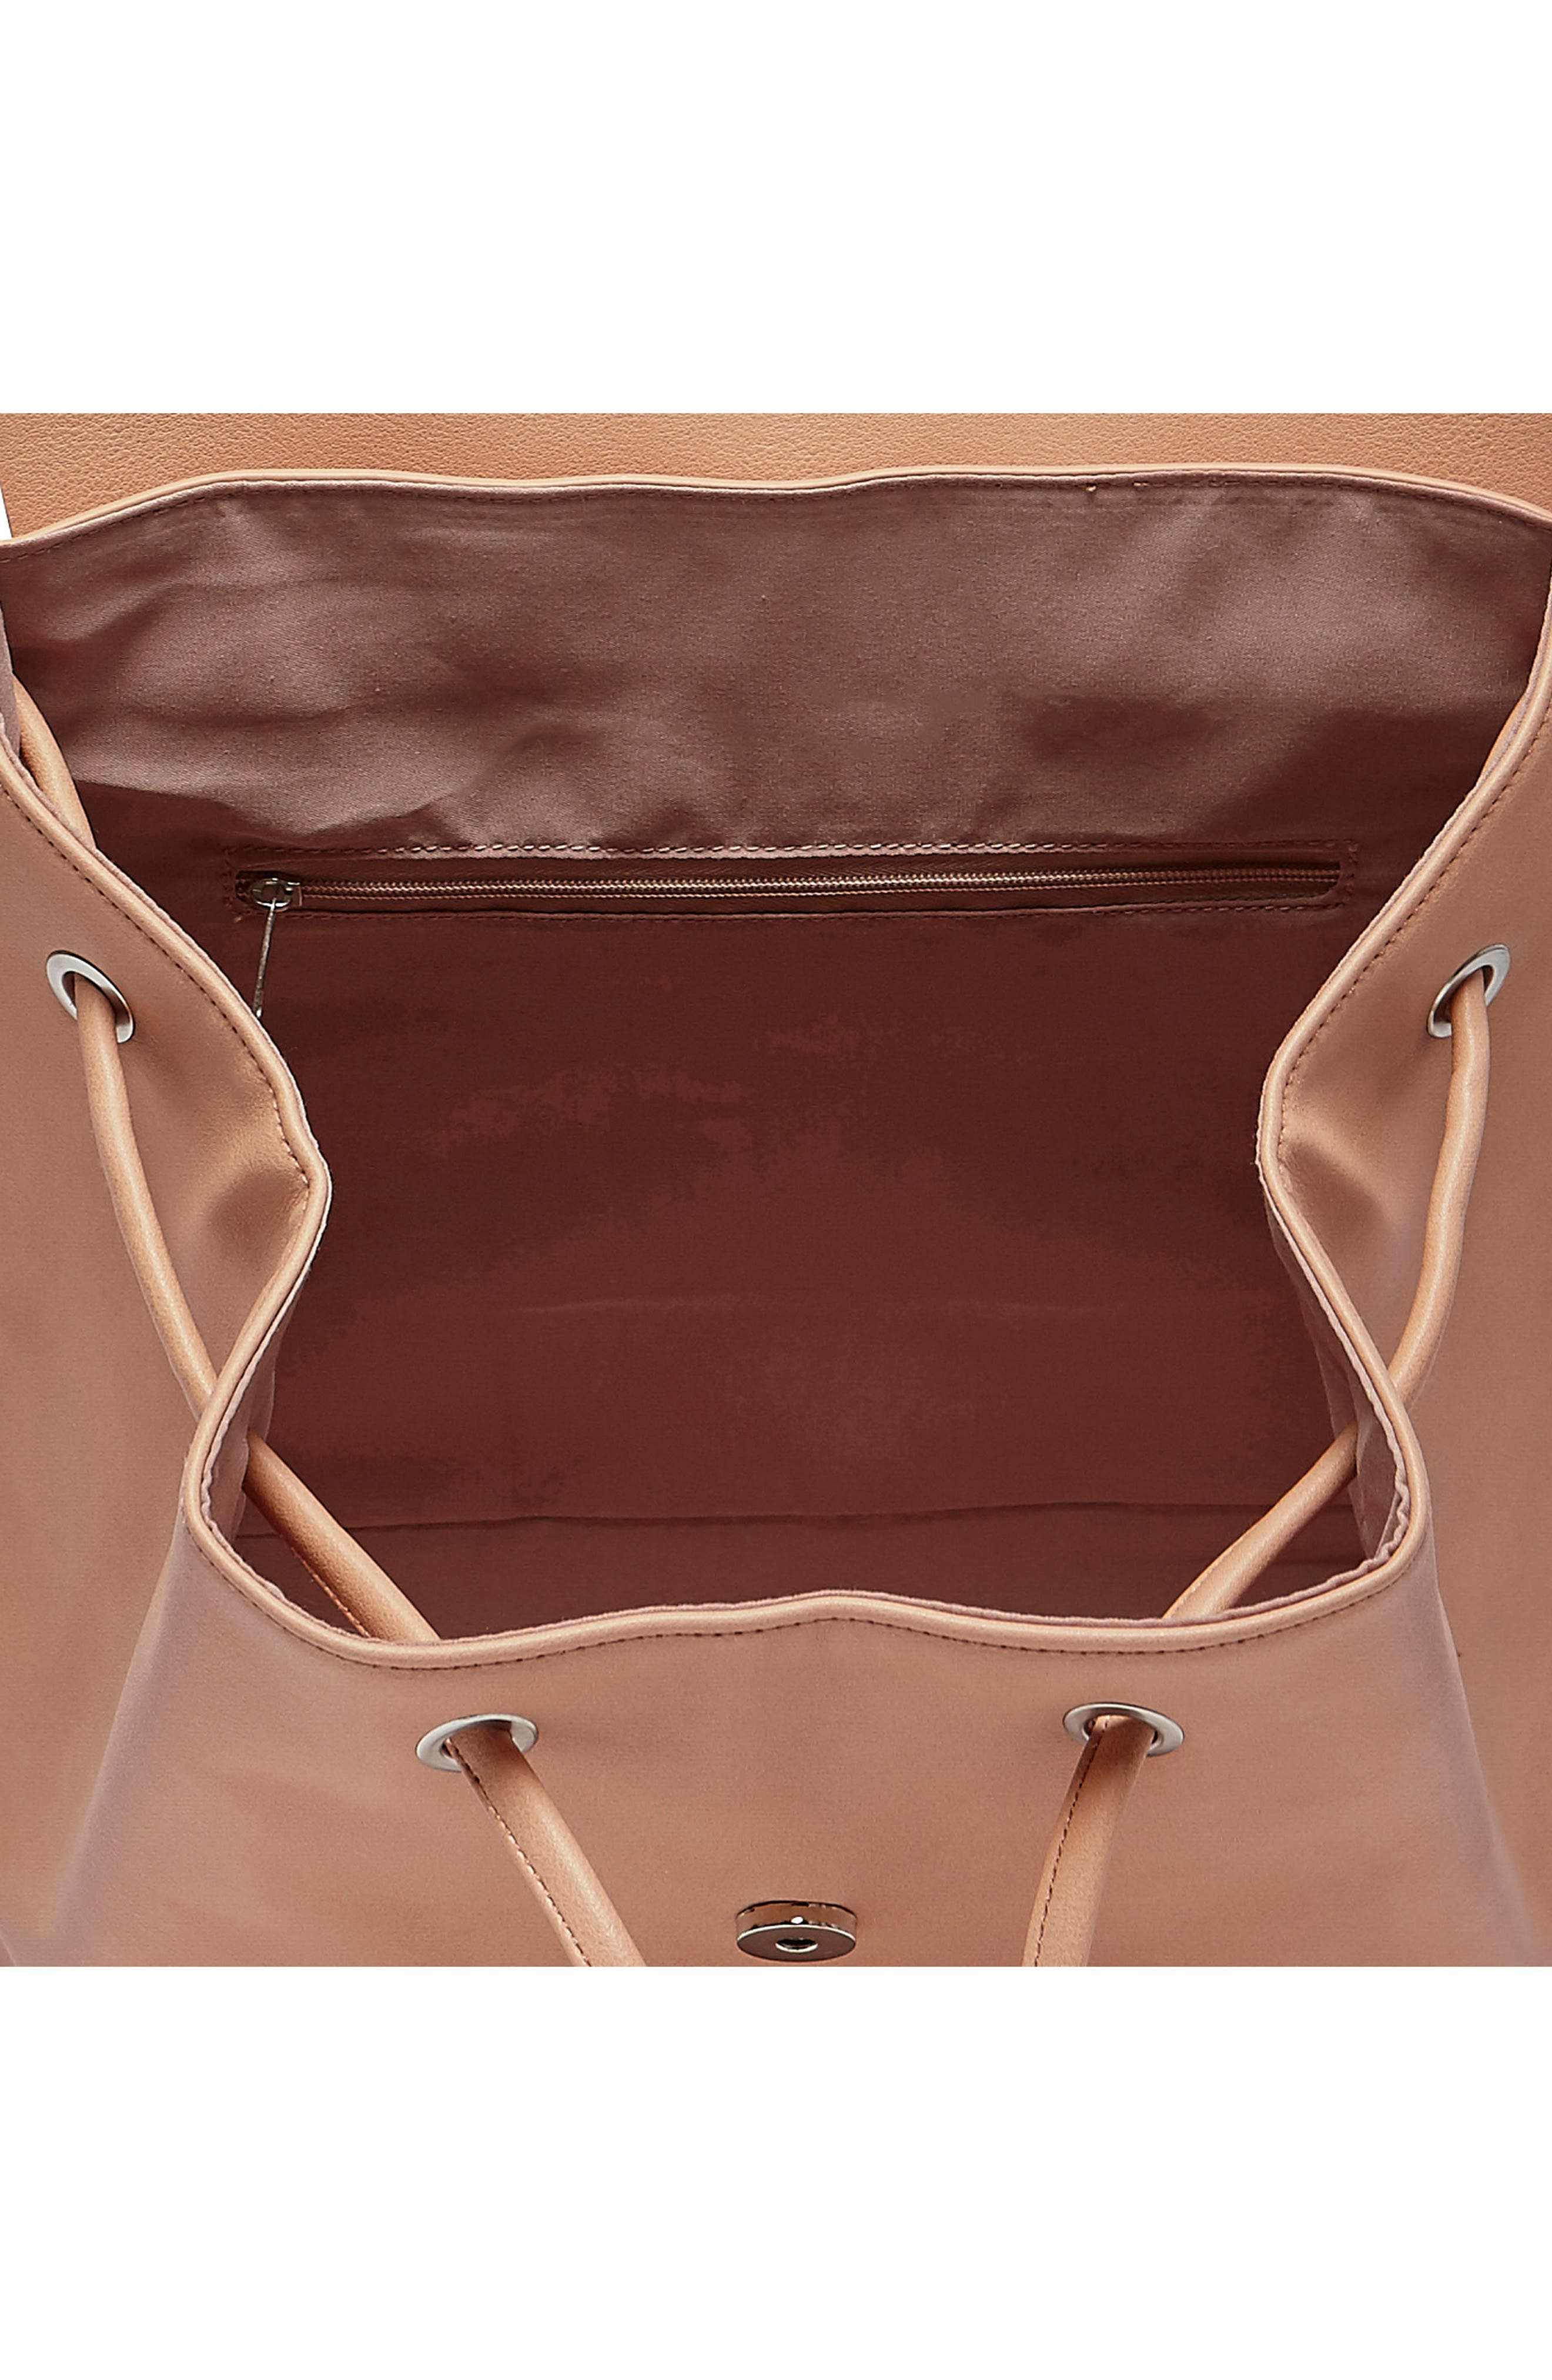 Midnight Vegan Leather Flap Backpack,                             Alternate thumbnail 3, color,                             Pink